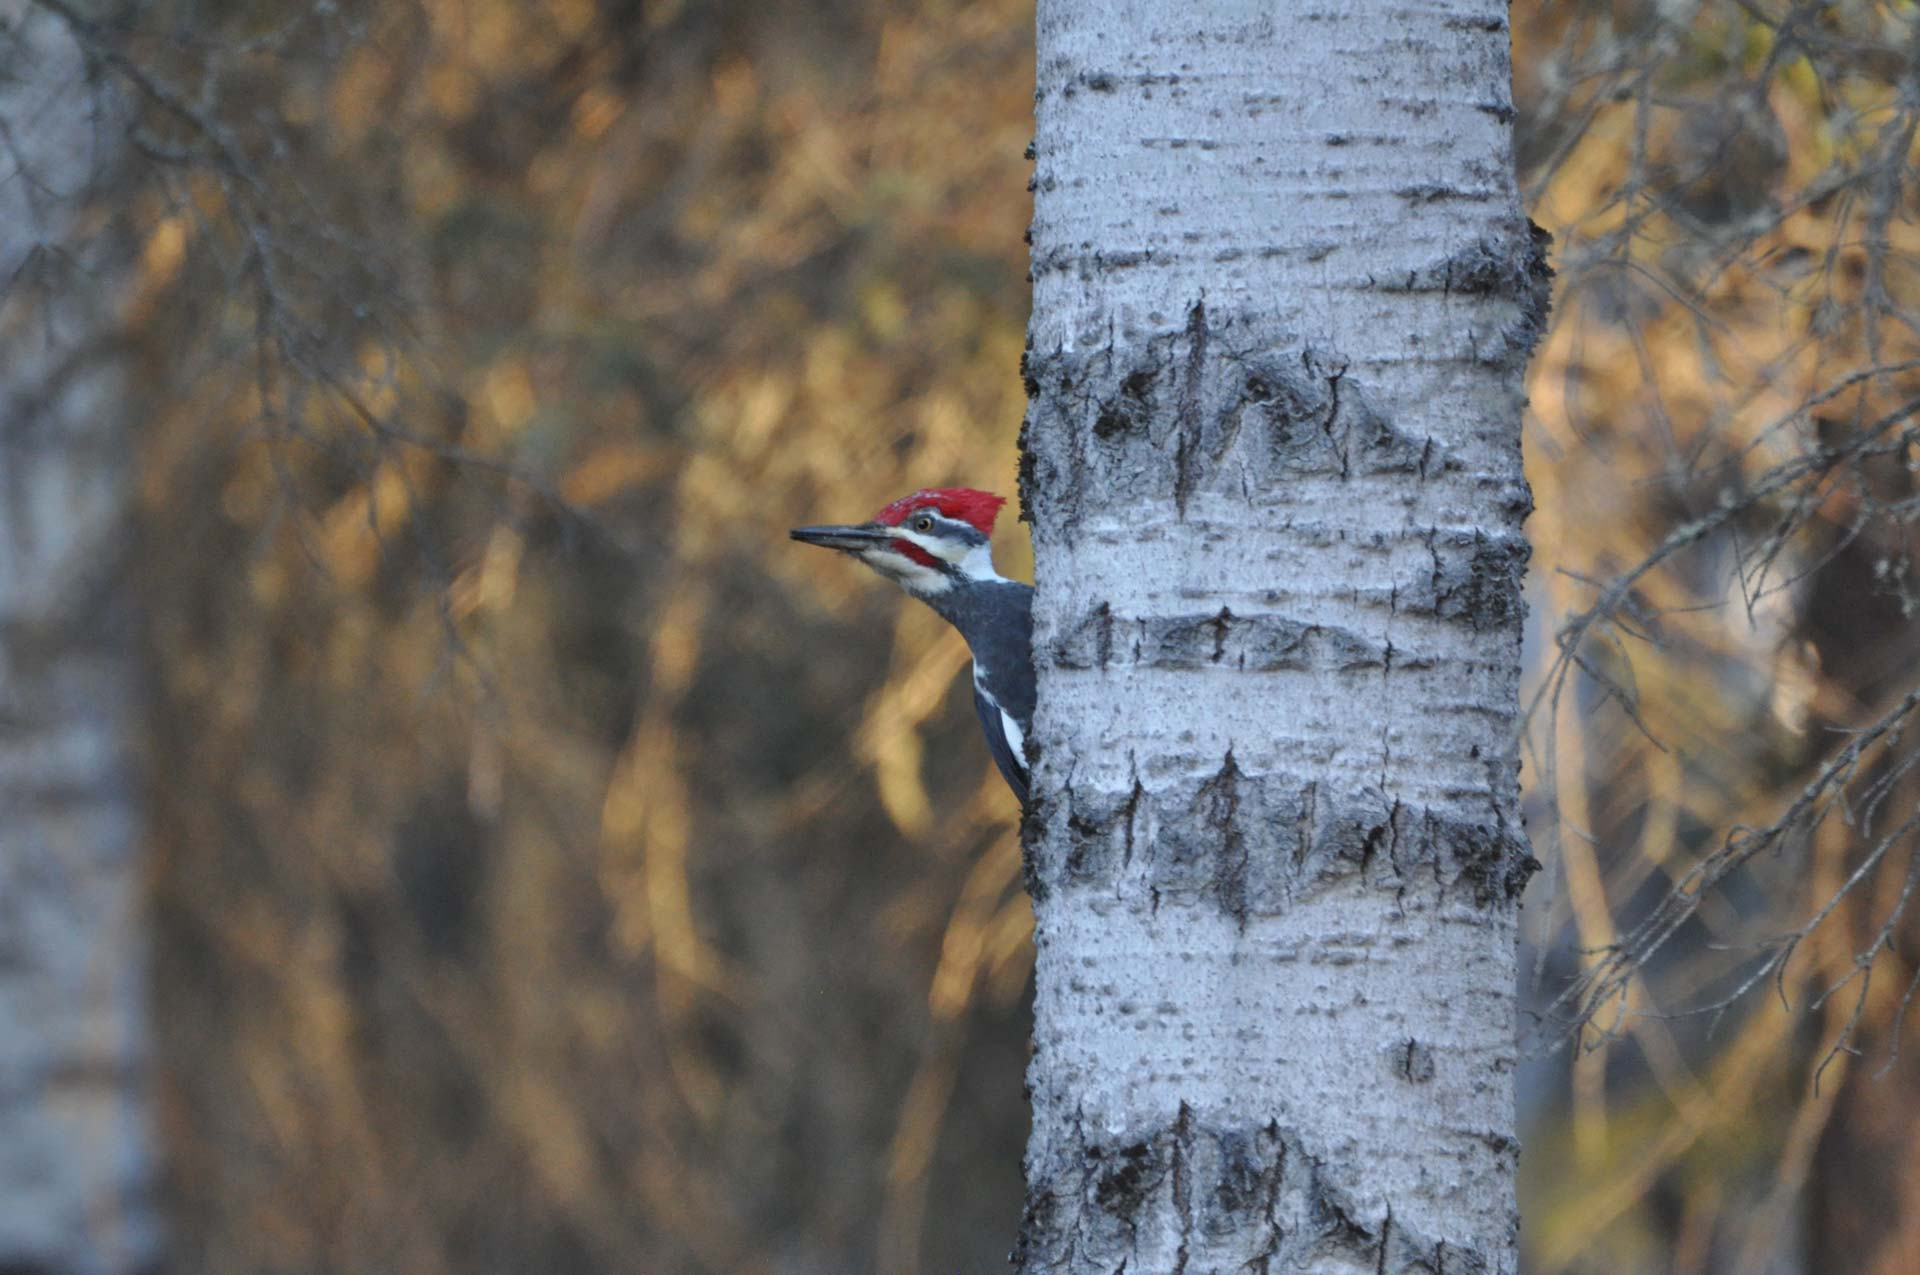 A woodpecker perched on a birch tree.